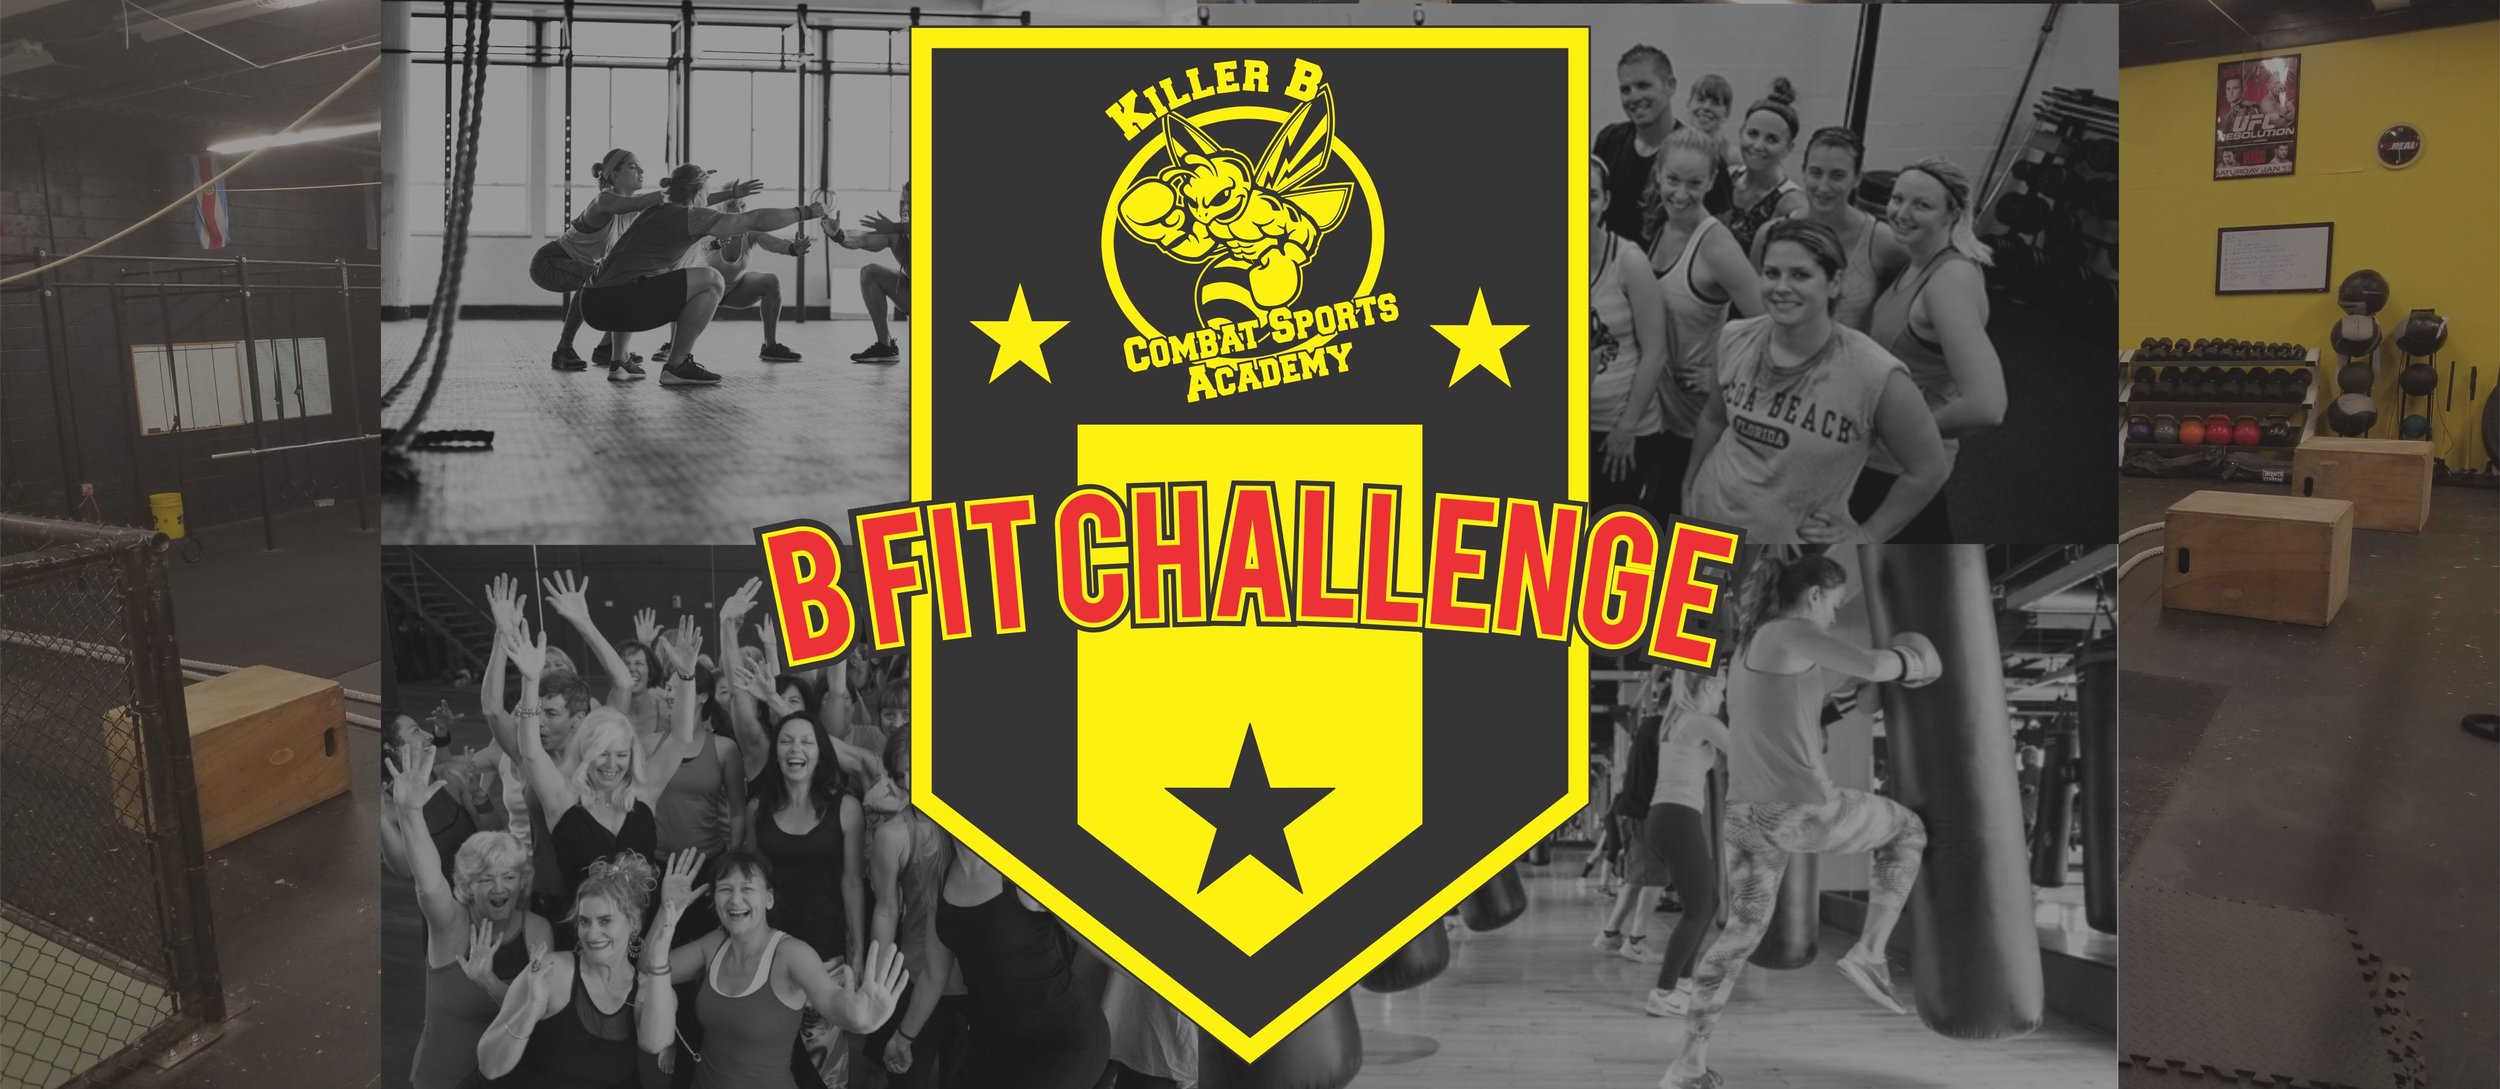 bfitchallenge_group_cover.jpg